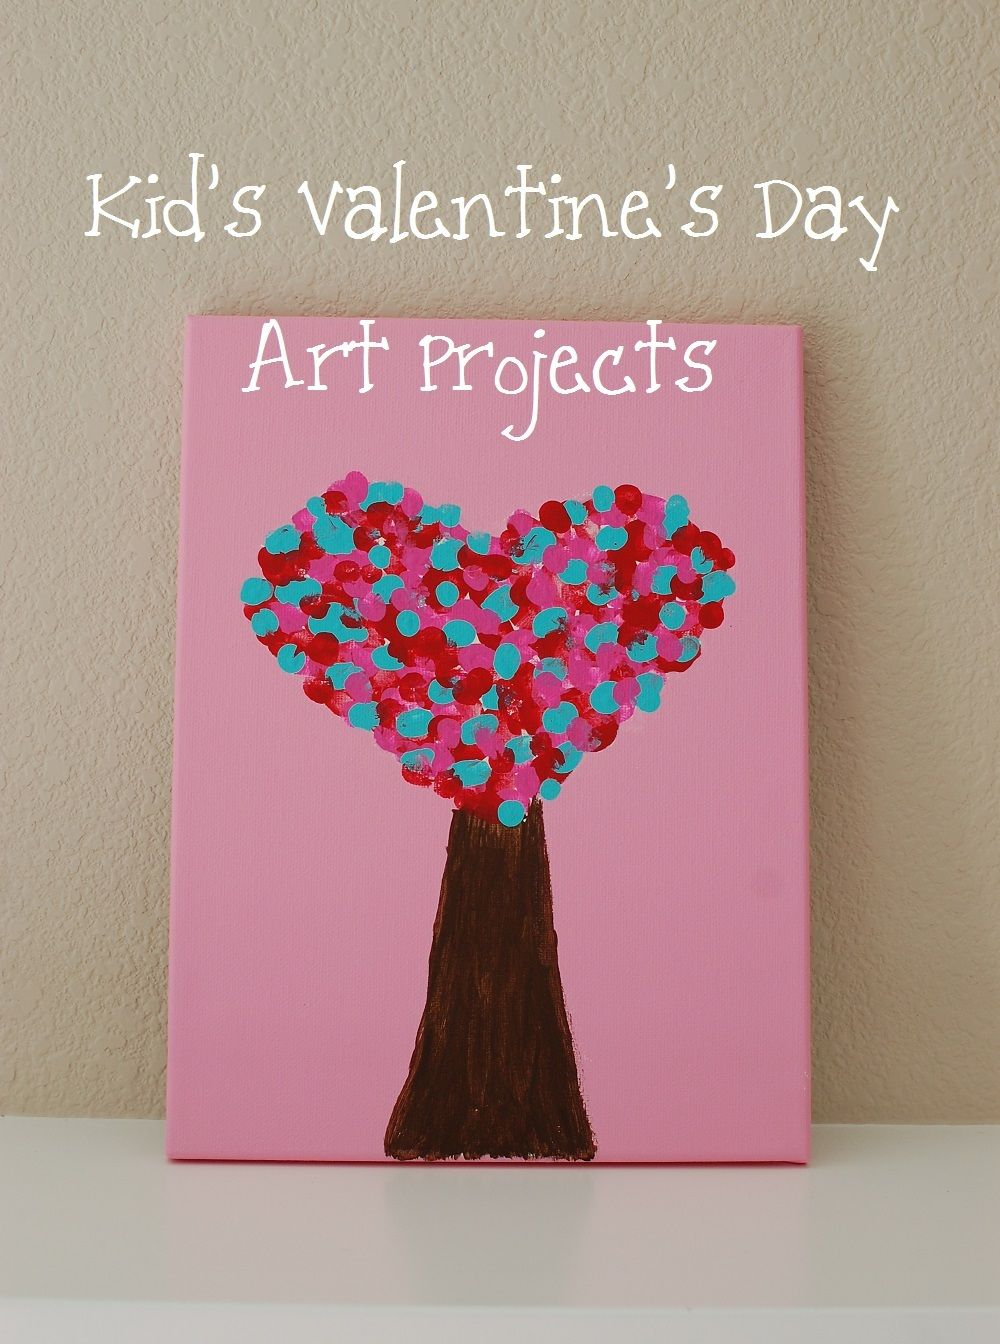 Kid s valentine s day art projects i think i can do this with thumb prints